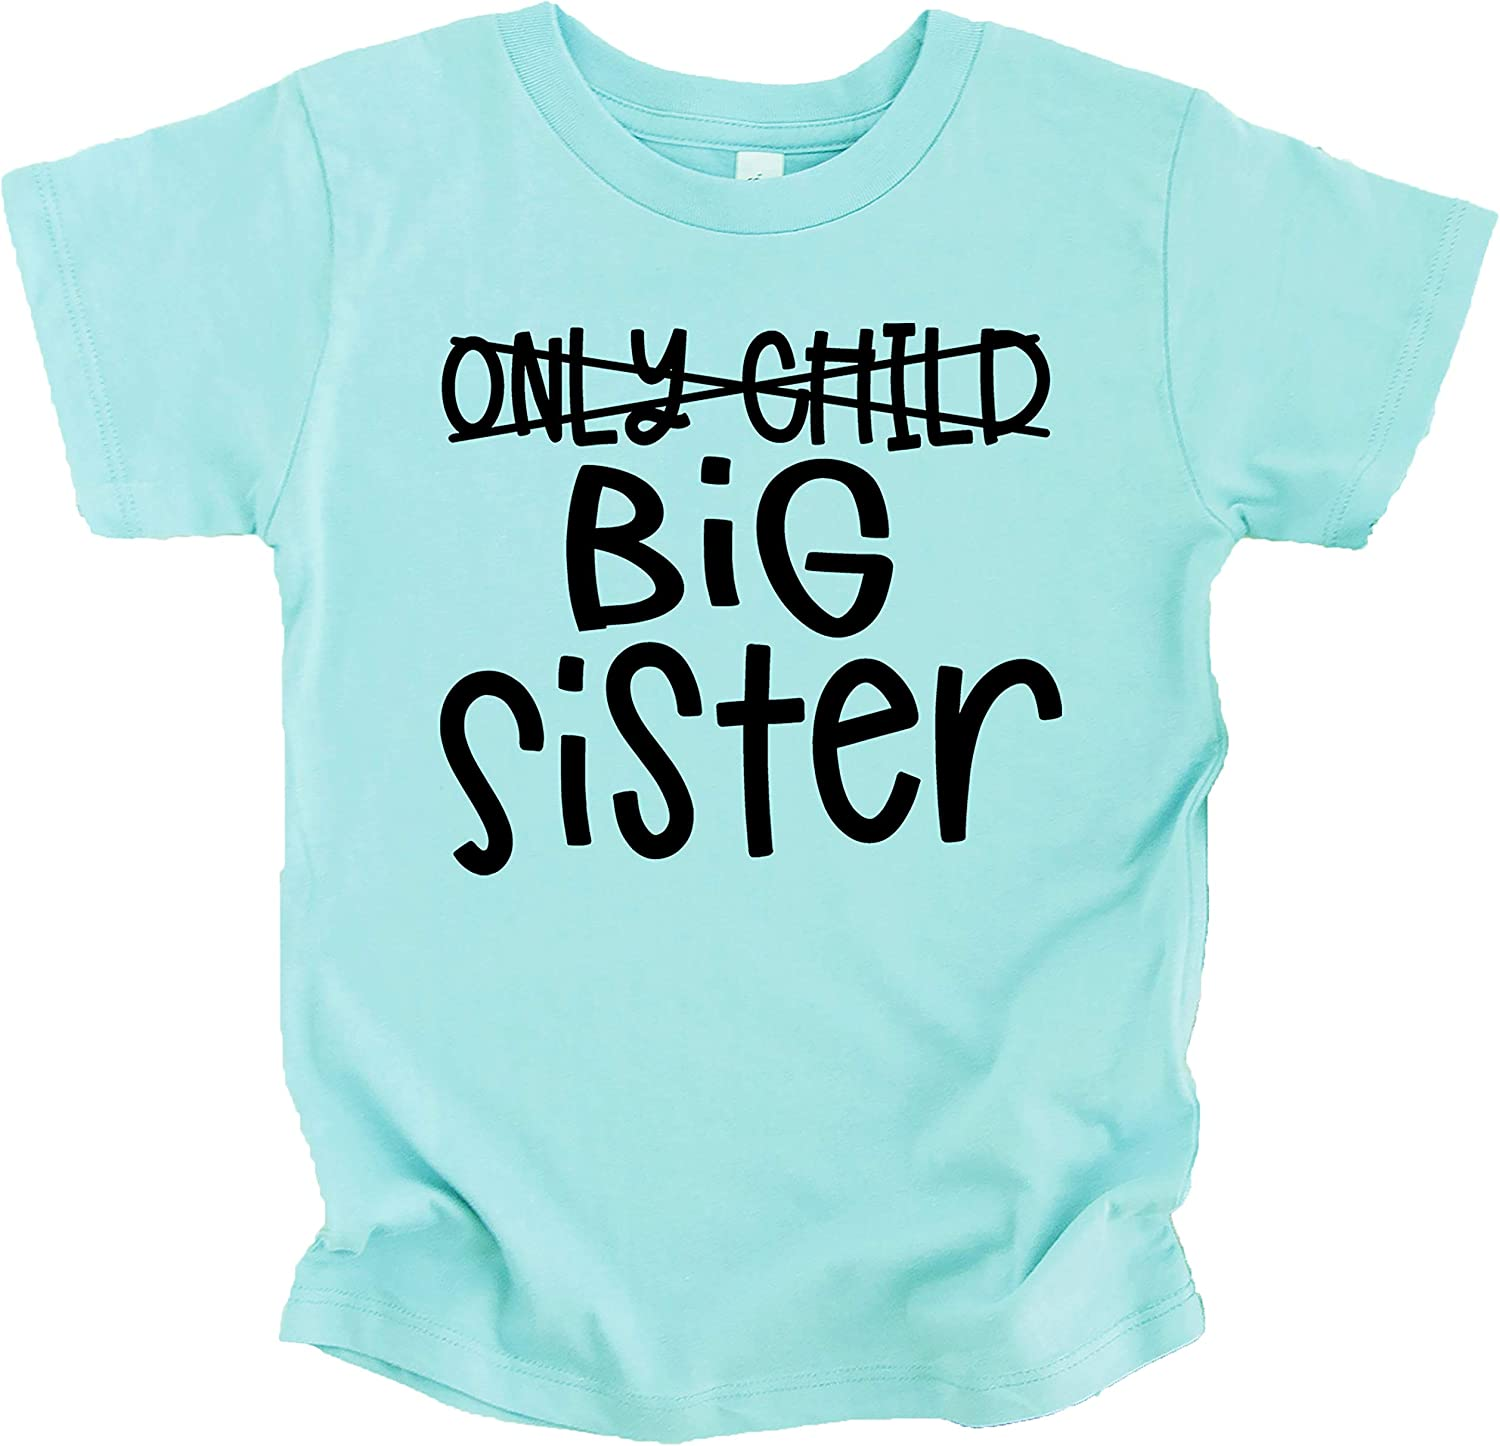 Olive Loves Apple Only Child to Big Sister Sibling Announcement Shirts for Baby and Toddler Girls Sibling Outfits